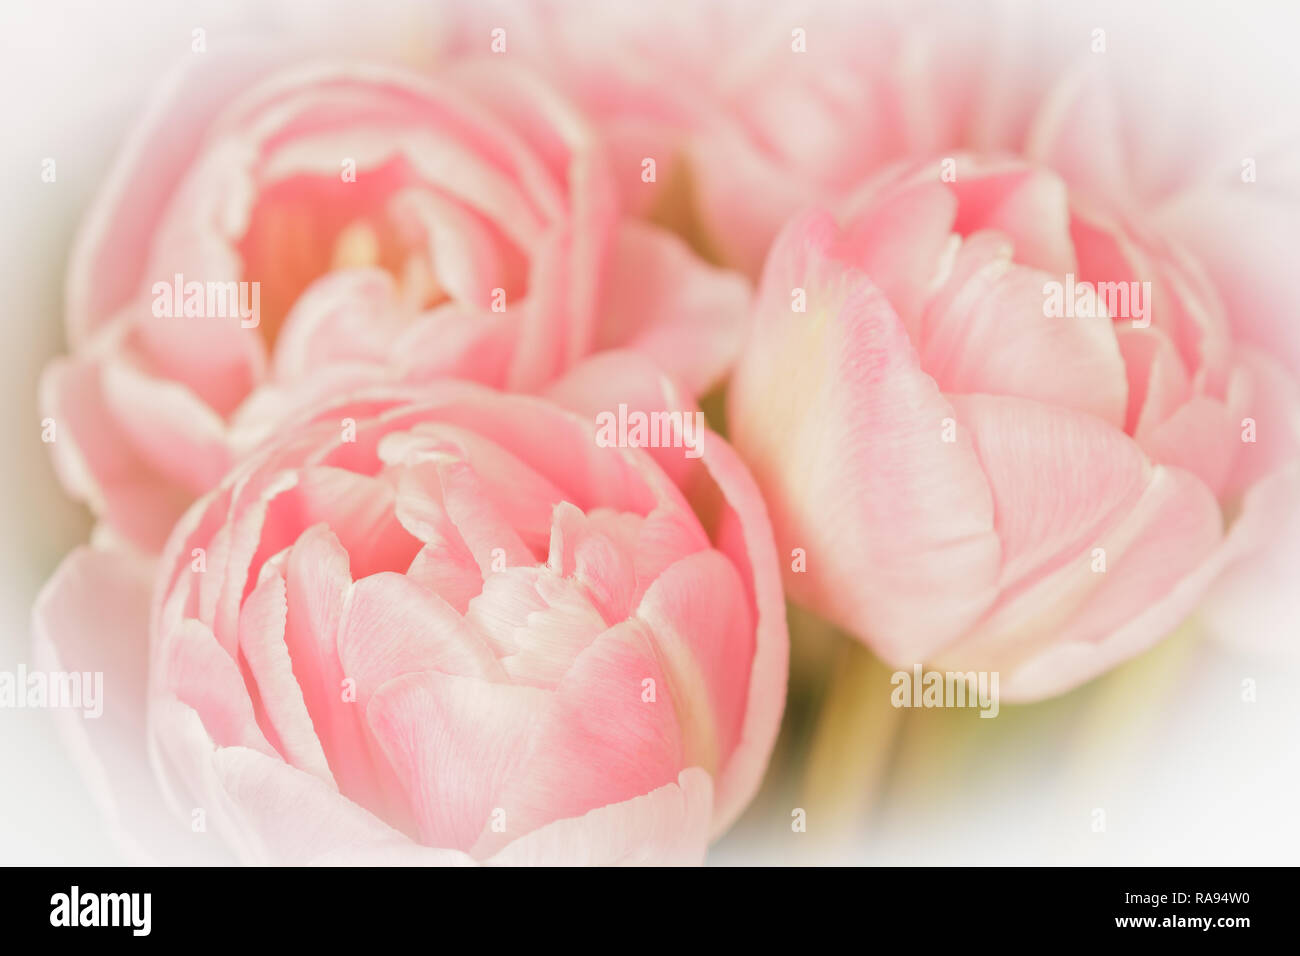 Tulip flowers in light shades of salmon pink against white, nostalgic and romantic background template, vintage filter effect Stock Photo